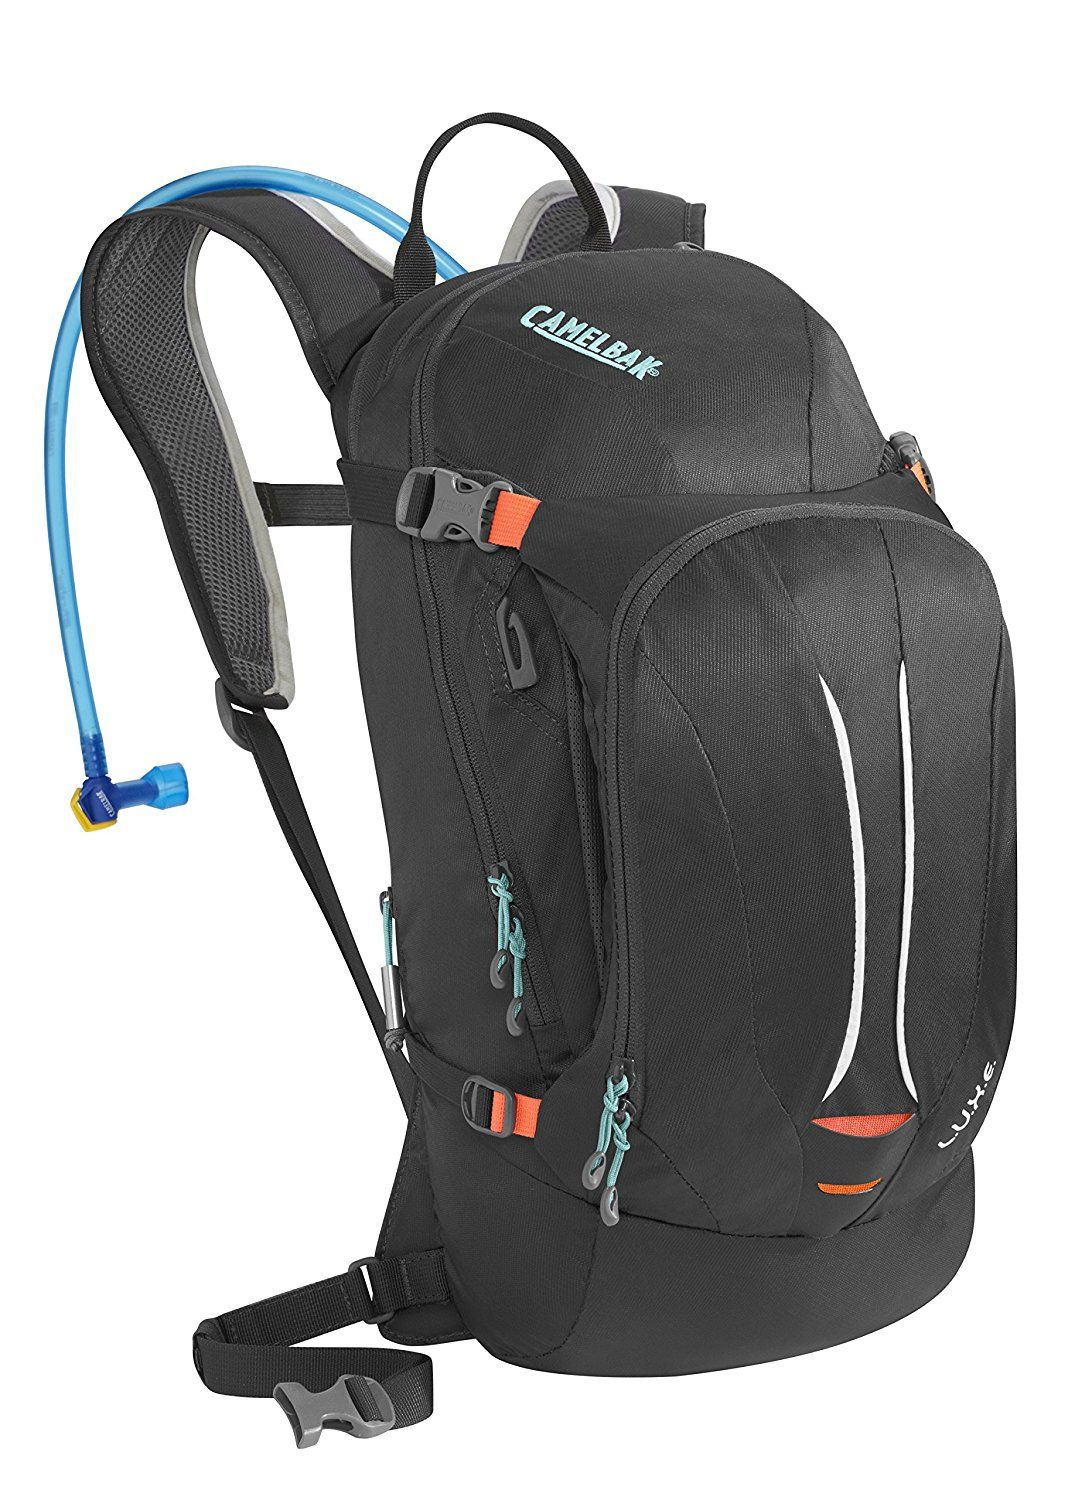 Osprey Farpoint 40 Backpack Review 7 Reasons It's Ideal